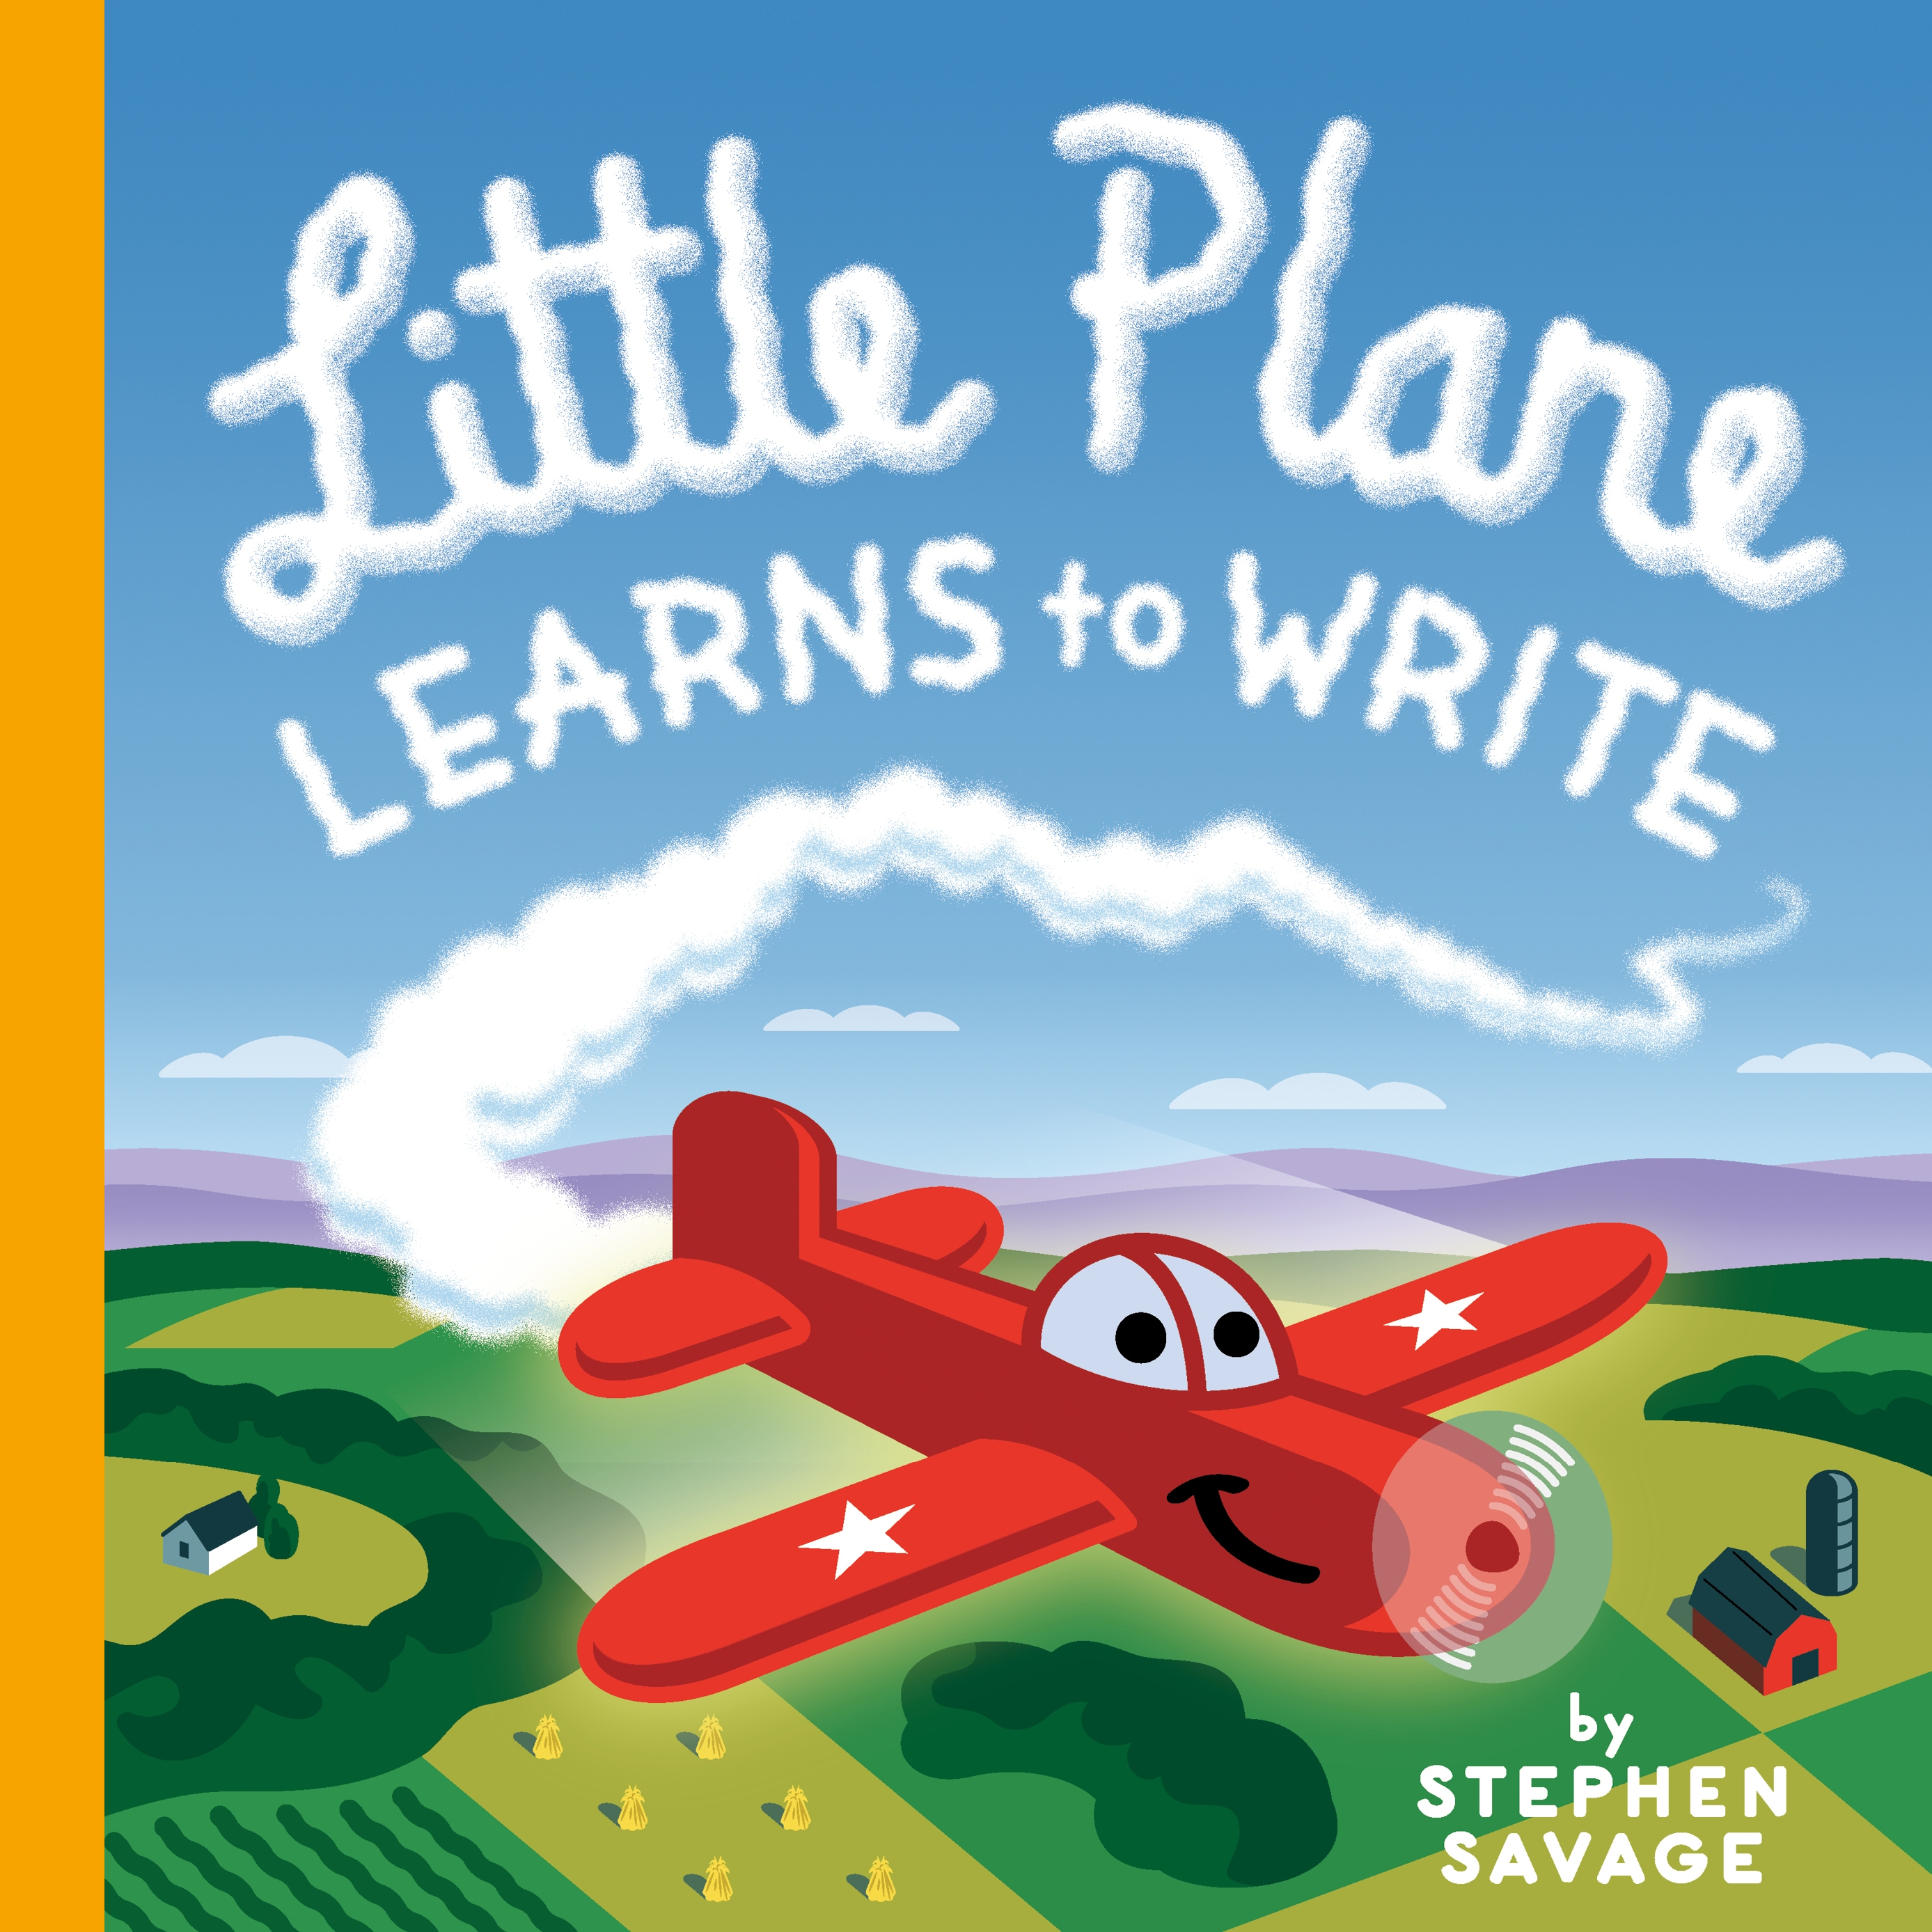 Sunday Story Time: Little Plane Learns to Write by Stephen Savage